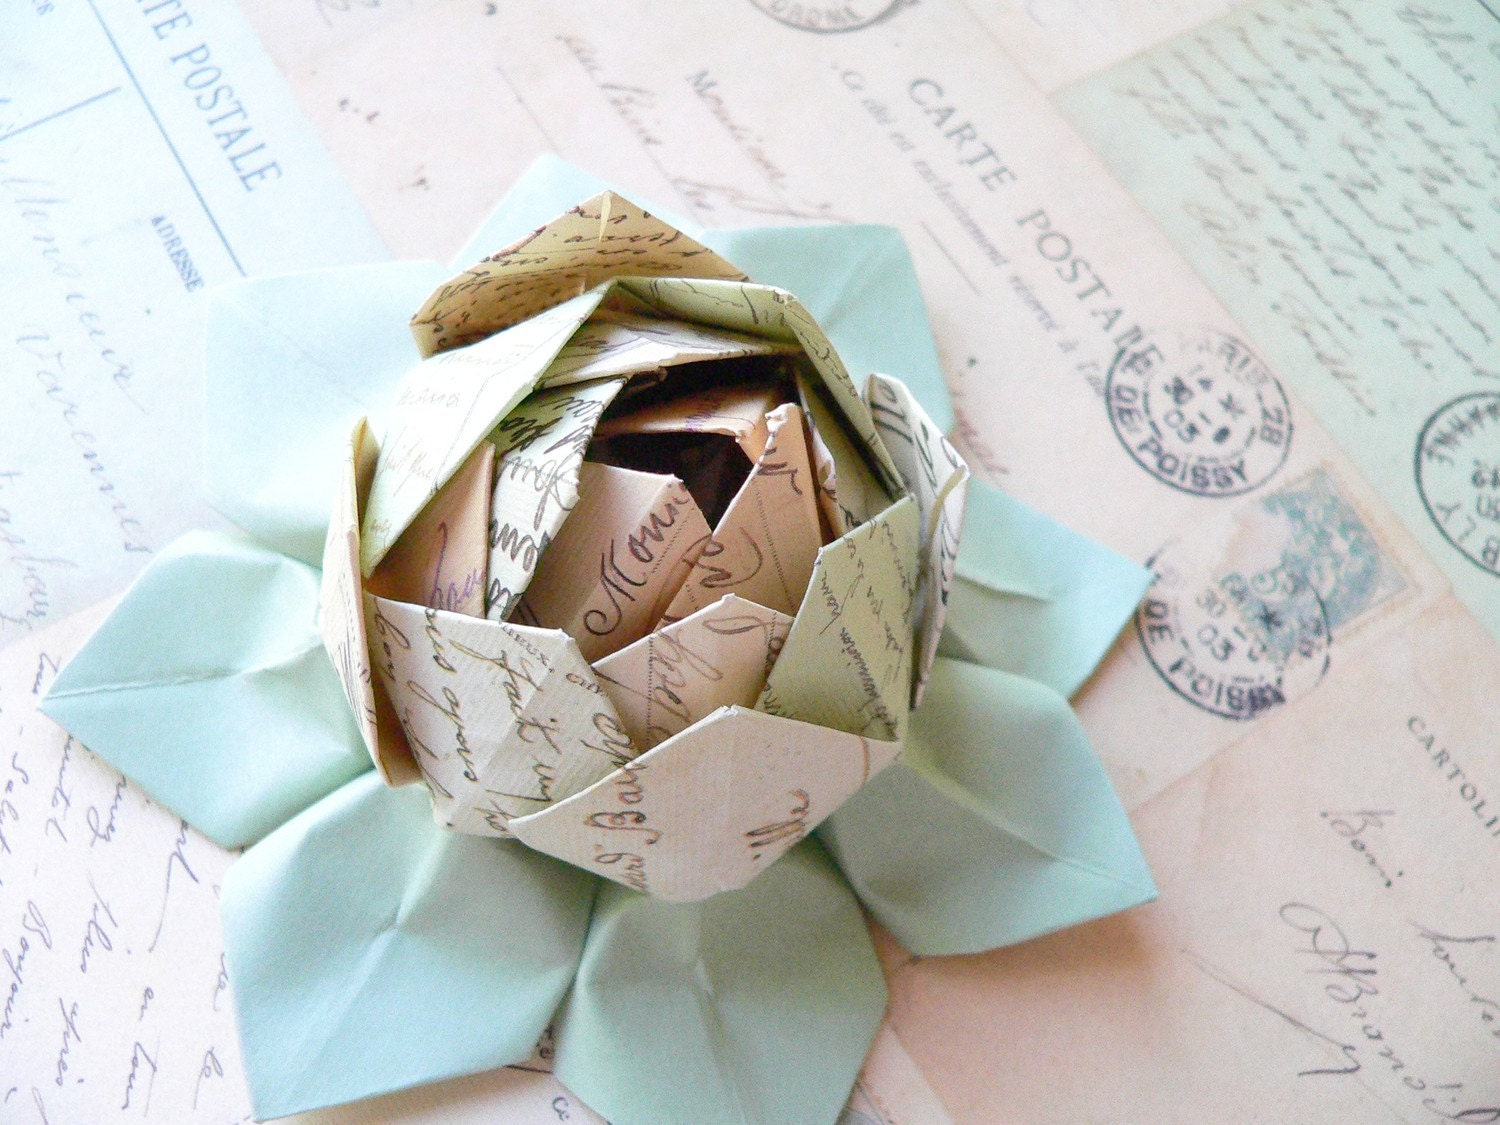 Origami Lotus Flower Decoration or Favor // made from fine Italian Cartes Postale paper